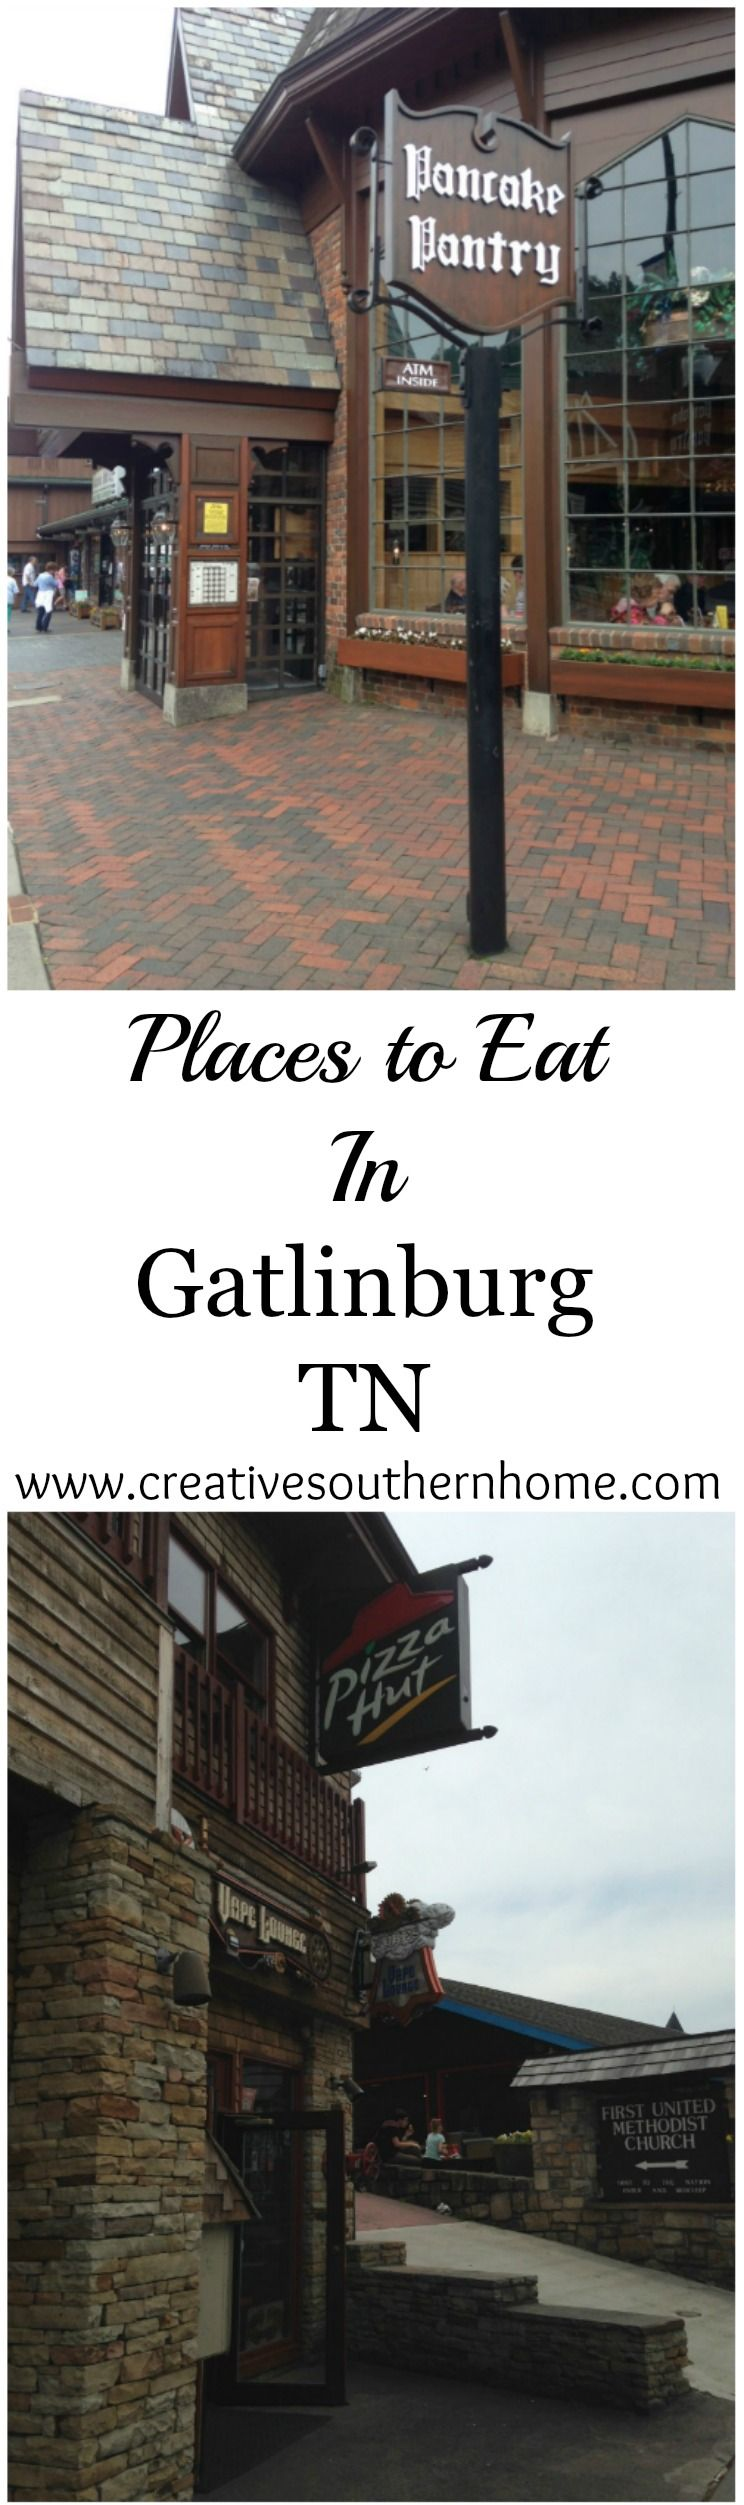 Kids Eat Free Restaurants Gatlinburg Tn